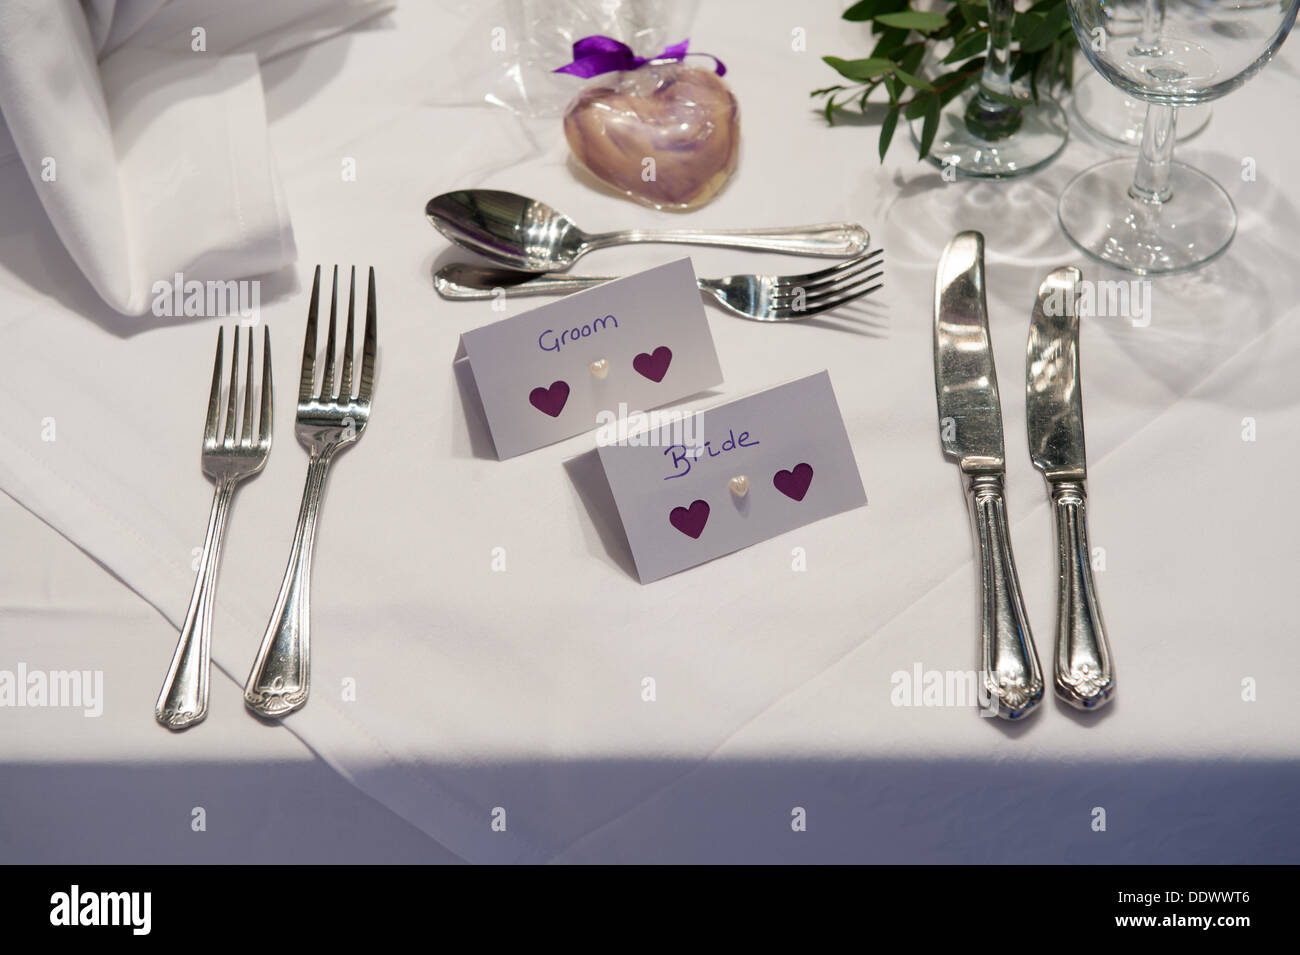 Wedding Place Setting For Bride And Groom   Stock Image